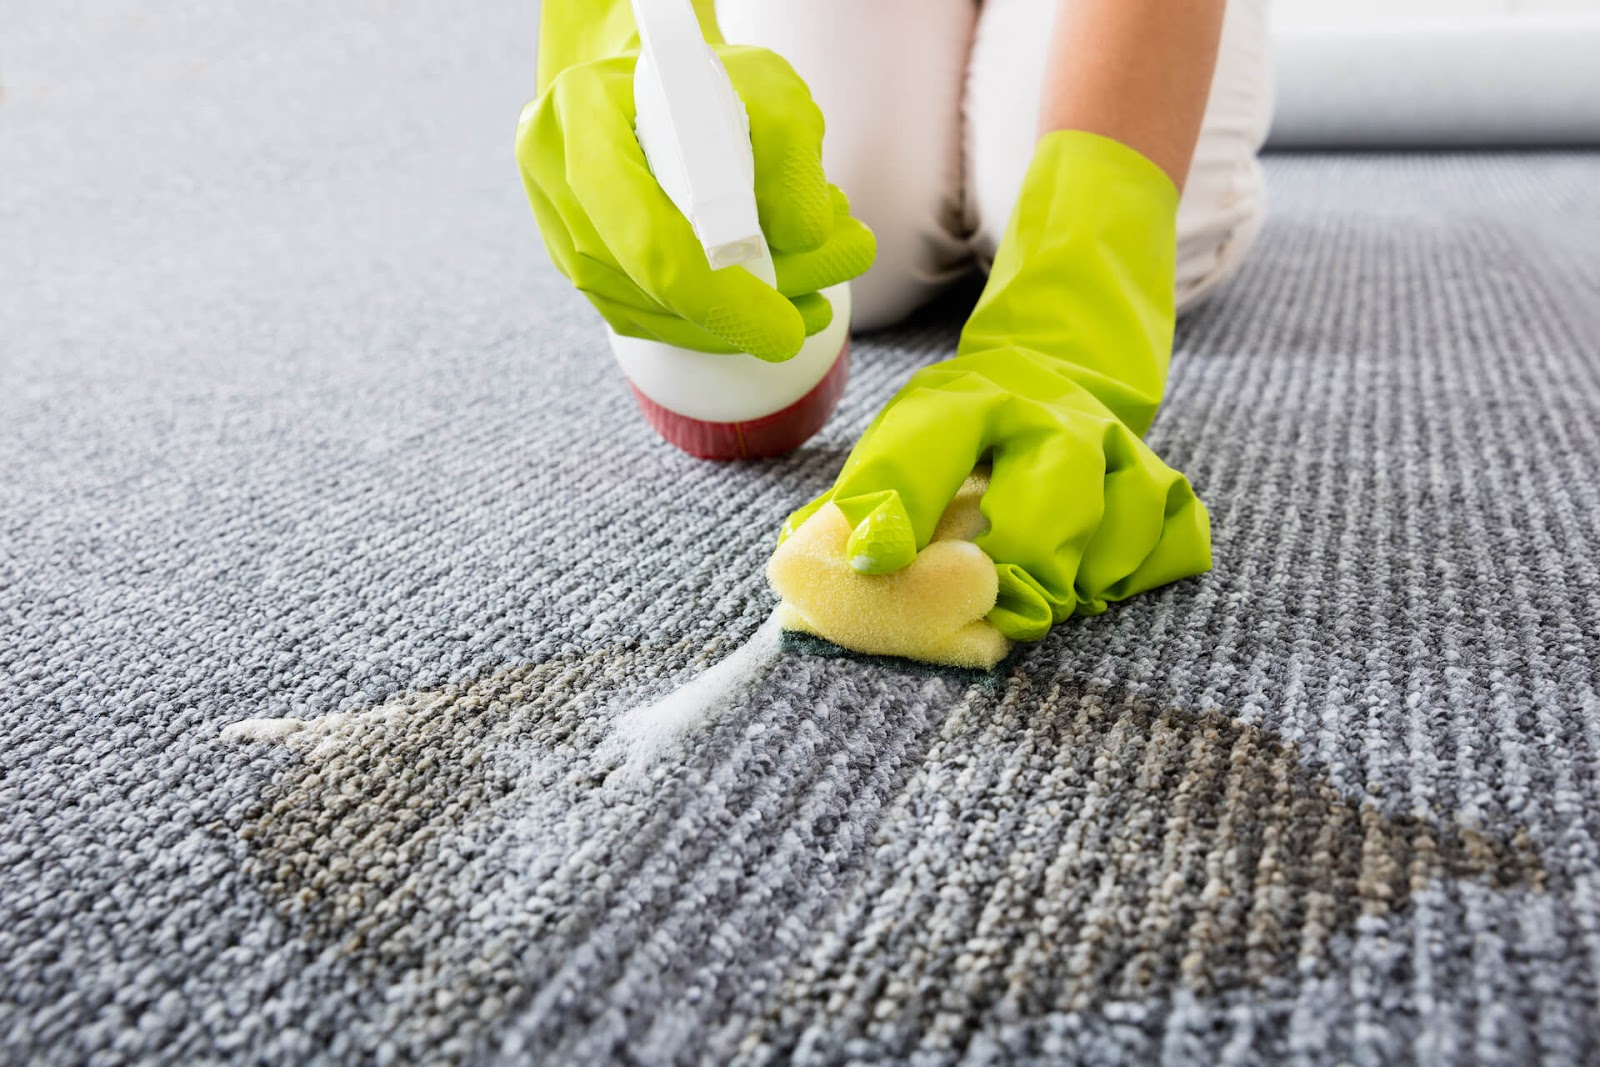 Close up of hands scrubbing cat pee out of the carpet